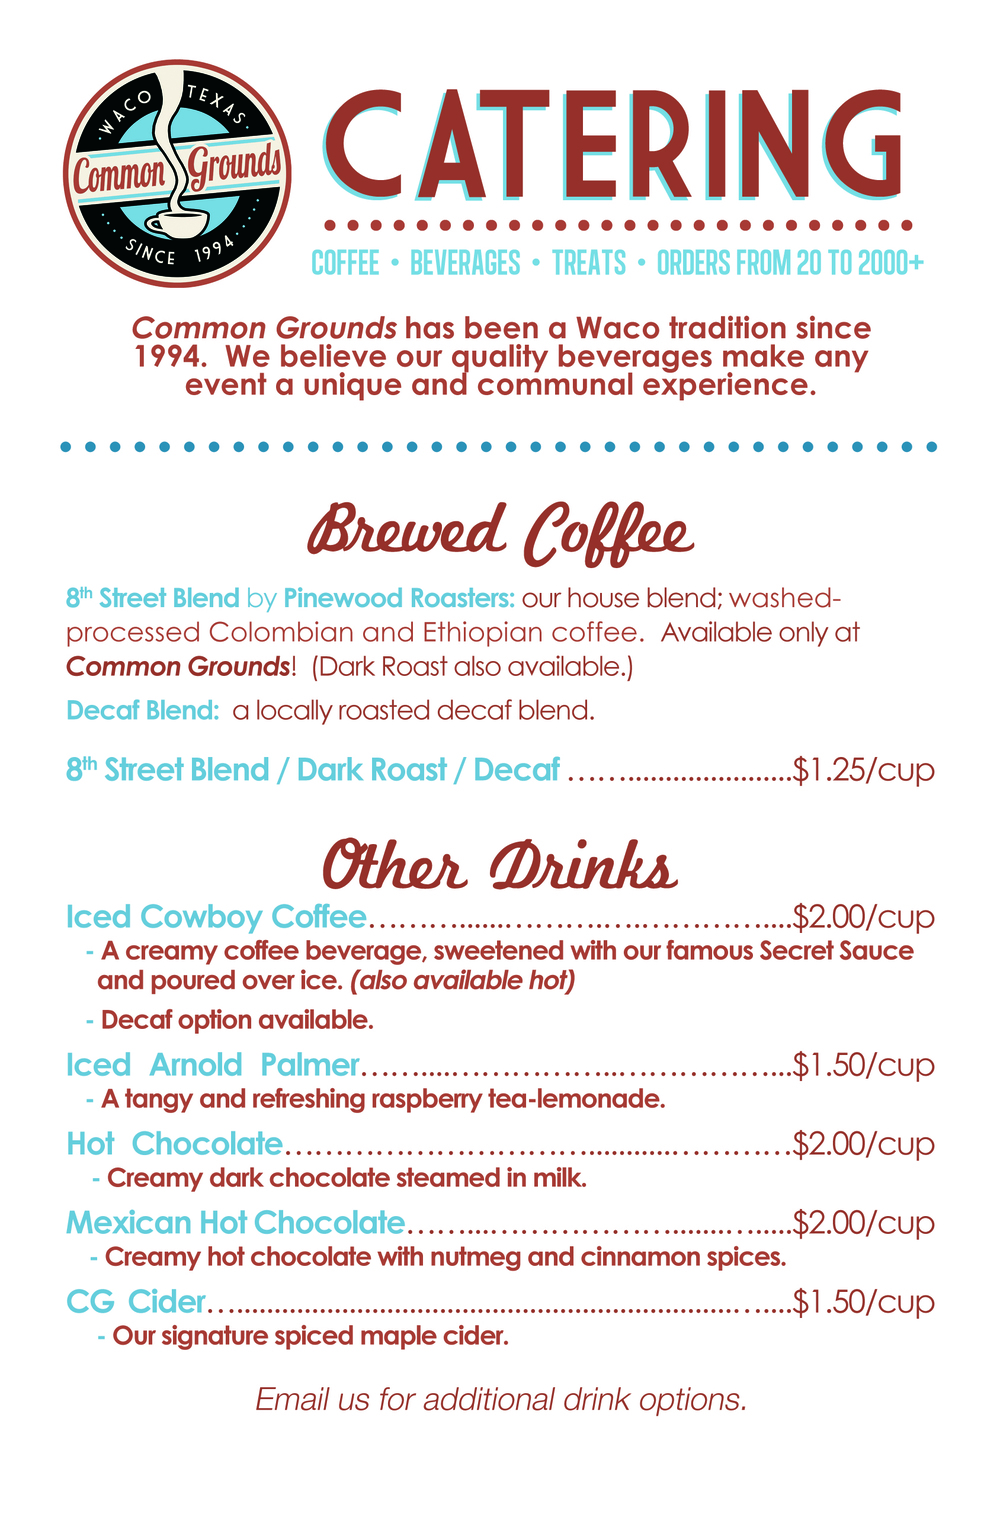 Coffee Catering & Beverages Flyer